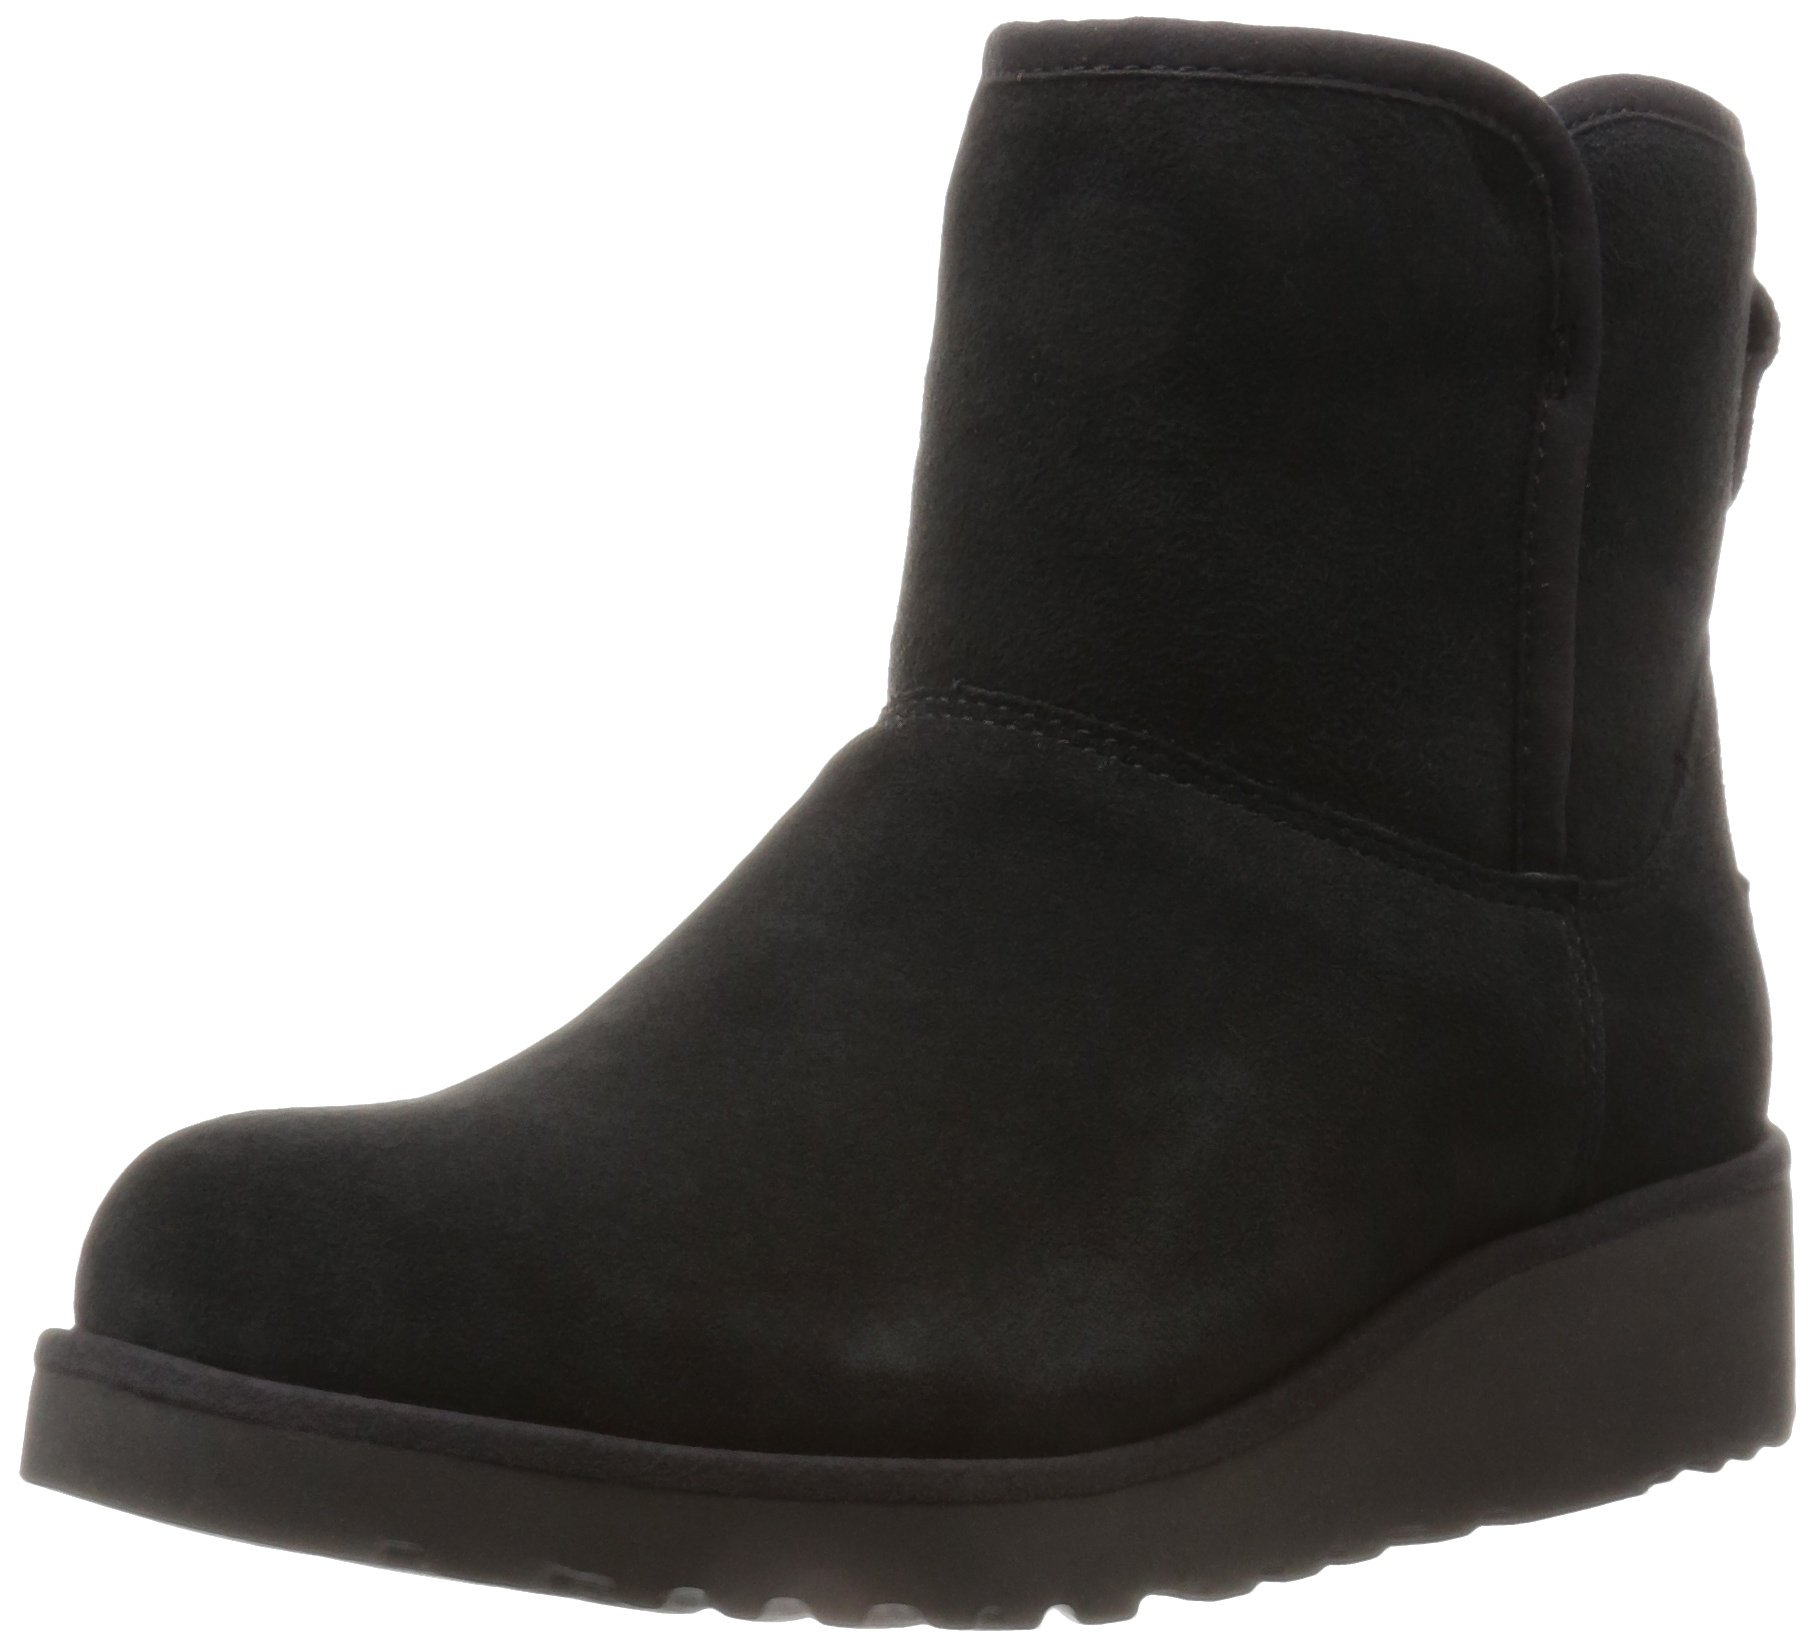 UGG Women's Kristin Winter Boot, Black, 7.5 B US